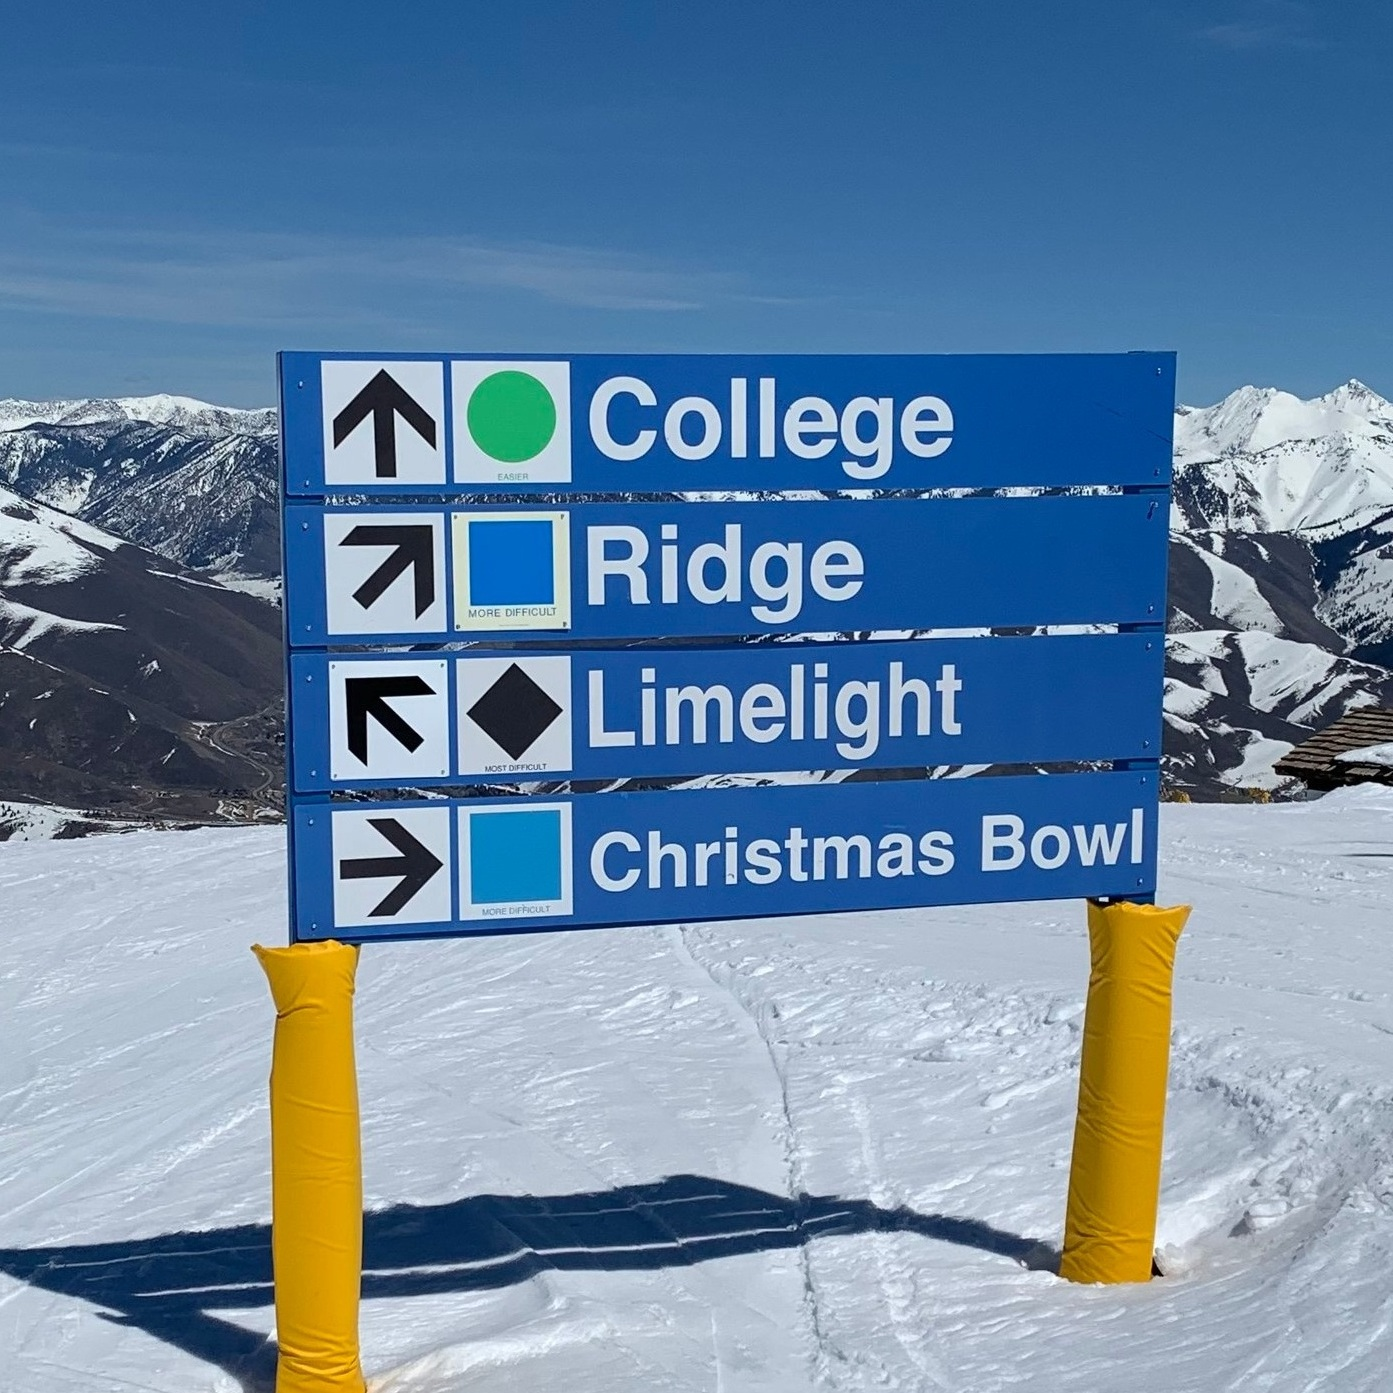 "Image of sign on ski slope with ski trail named ""College""."